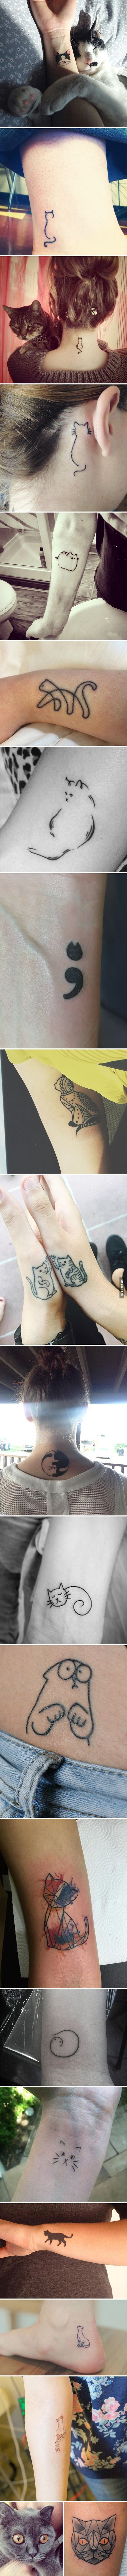 "coolTop Tiny Tattoo Idea - 20 Minimalistic ""Cattoos"" For Cat Lovers Check more at http://tattooviral.com/tattoo-designs/small-tattoos/tiny-tattoo-idea-20-minimalistic-cattoos-for-cat-lovers/ - What more to say other than we just LOVE cool stuff!"